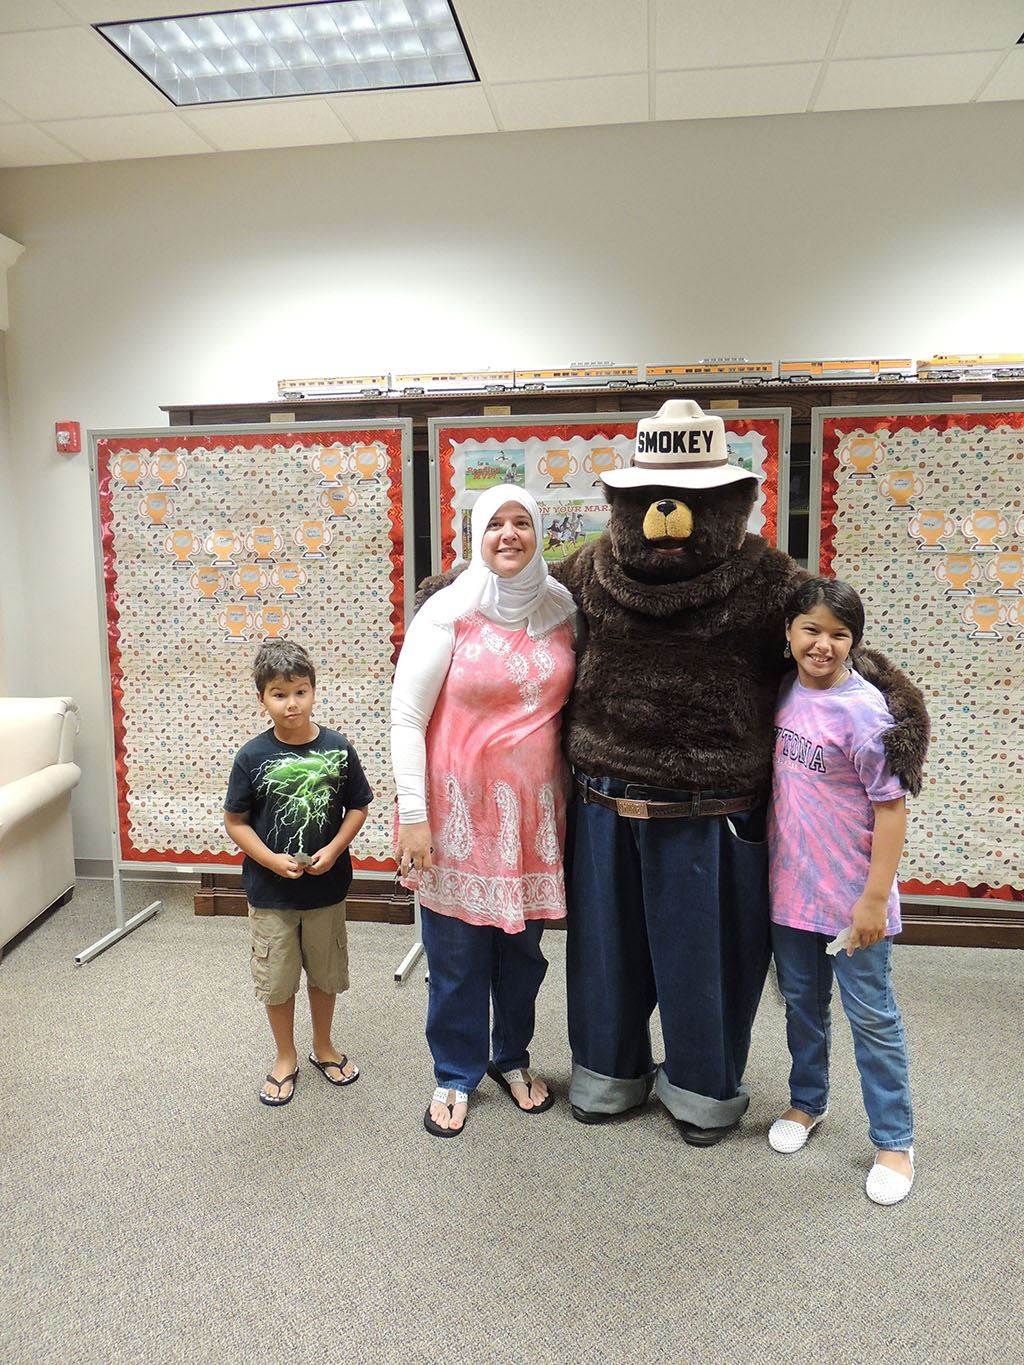 Smokey the Bear with family